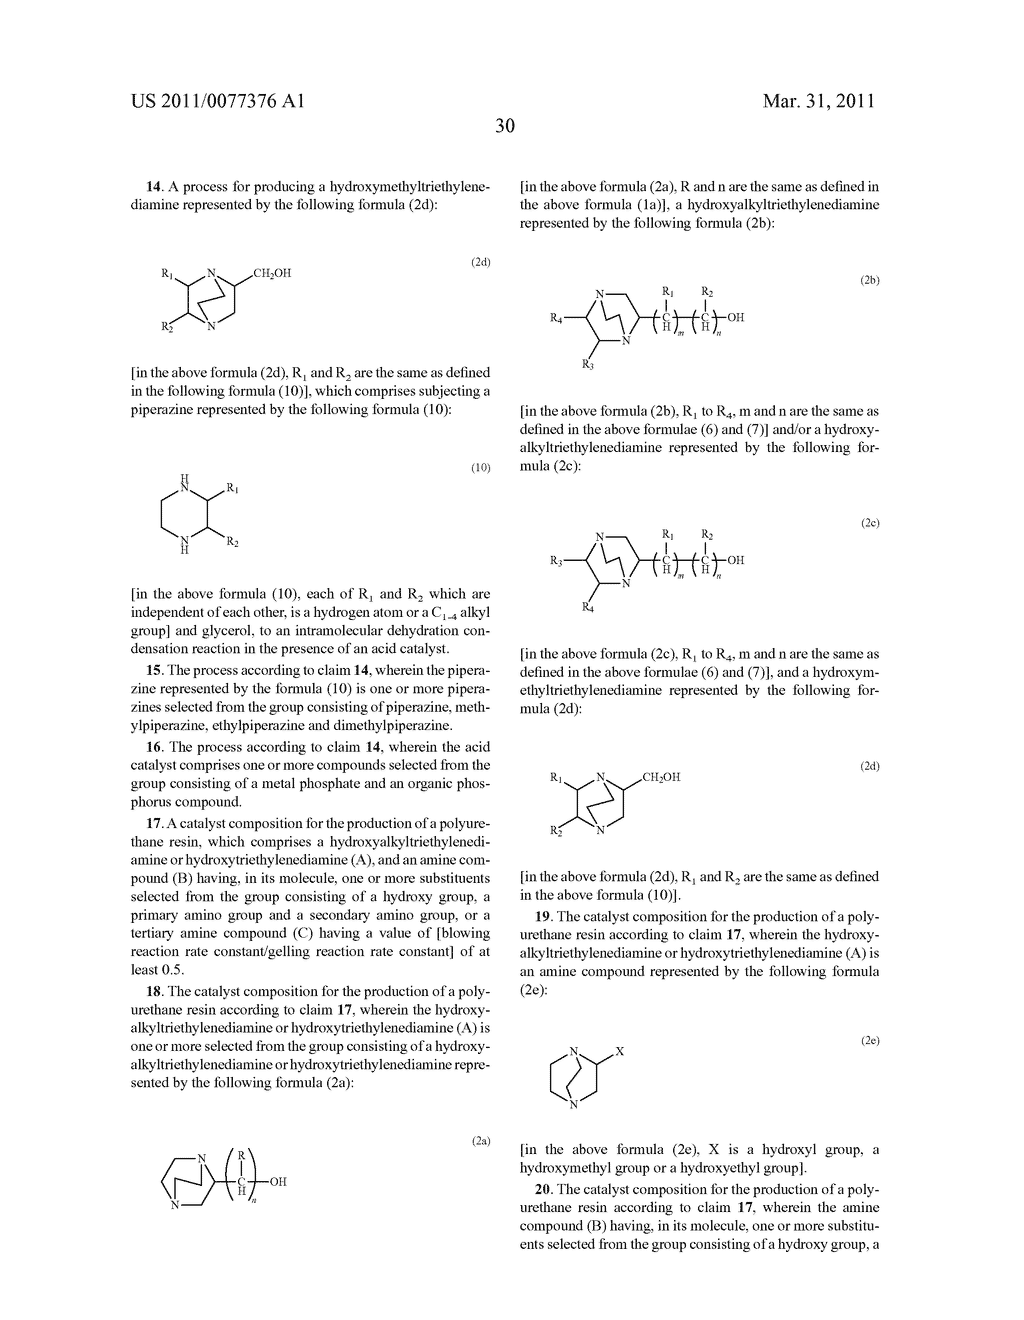 PROCESS FOR PRODUCING HYDROXYALKYLTRIETHYLENEDIAMINE, AND CATALYST COMPOSITION FOR THE PRODUCTION OF POLYURETHANE RESIN USING IT - diagram, schematic, and image 31